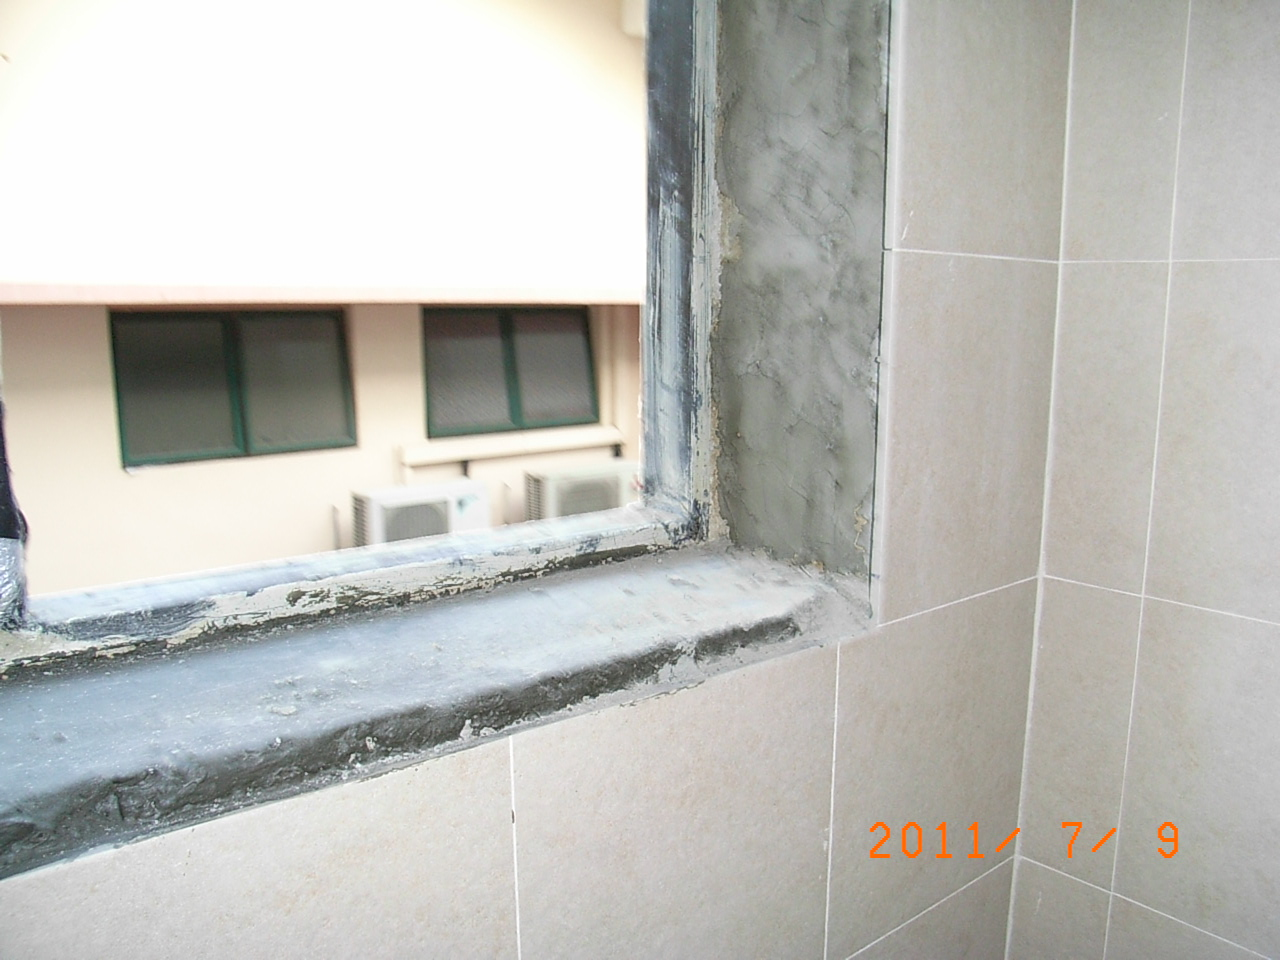 Petunialee Waterproofing Your Bathroom